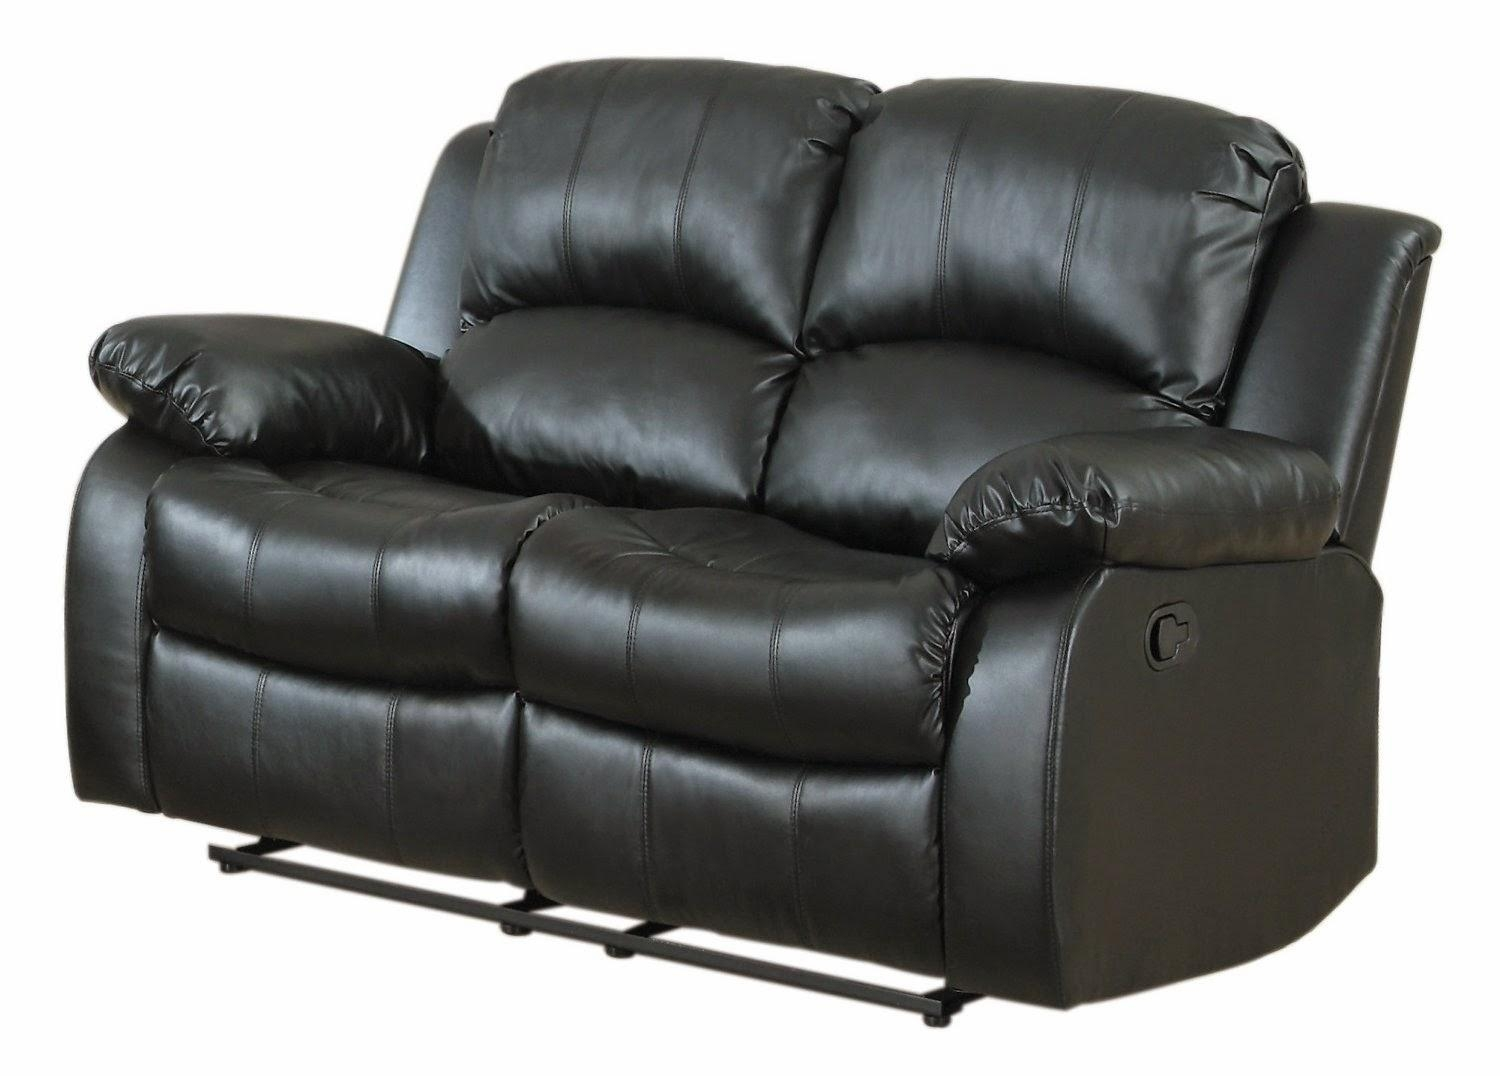 Sofas Center : Costco Leather Reclining Sofa Sofas And Throughout Berkline Leather Recliner Sofas (Image 16 of 20)